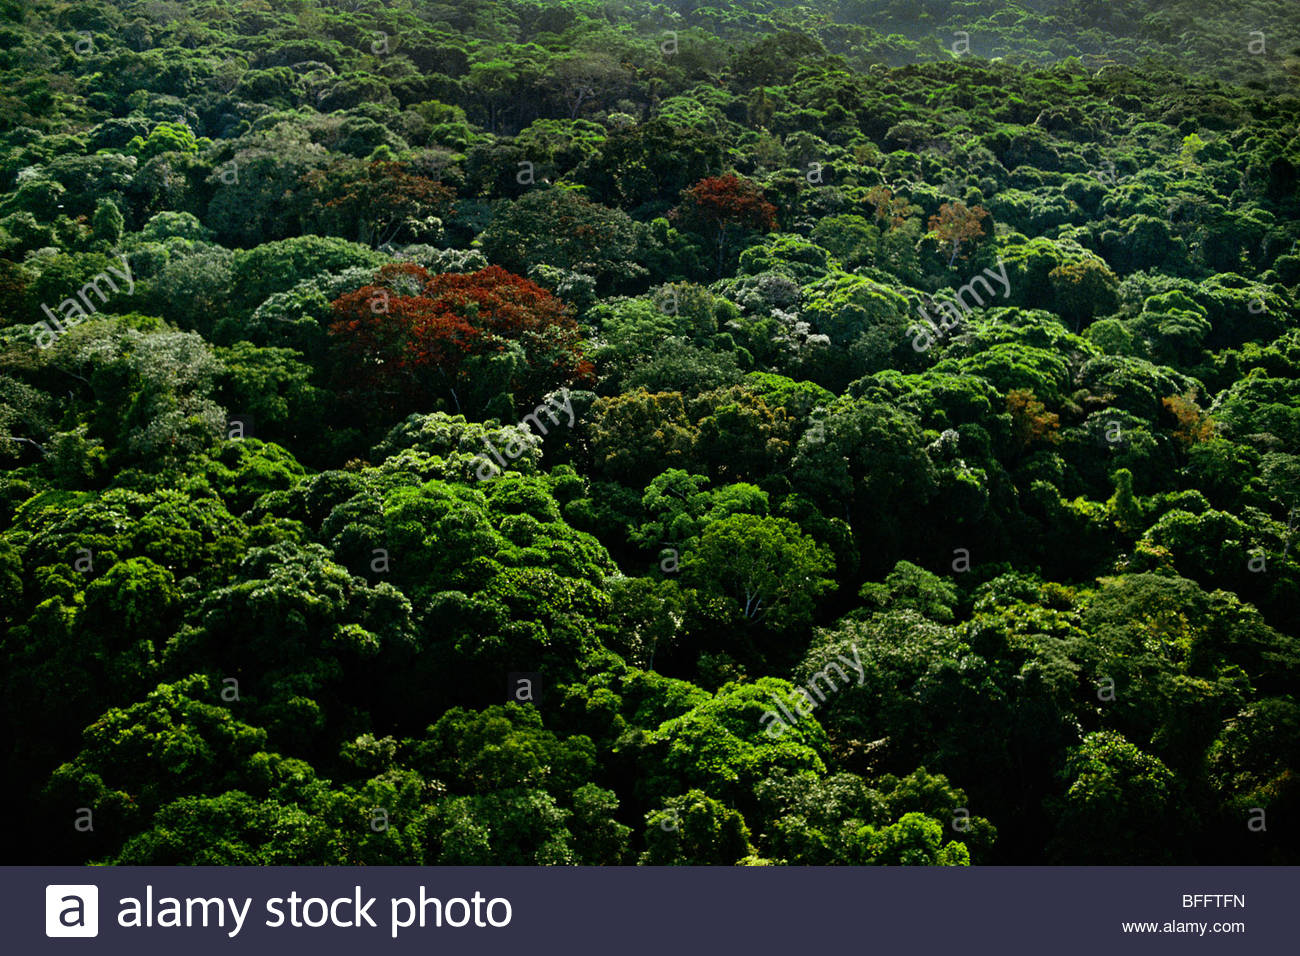 Flowering trees, Democratic Republic of Congo - Stock Image